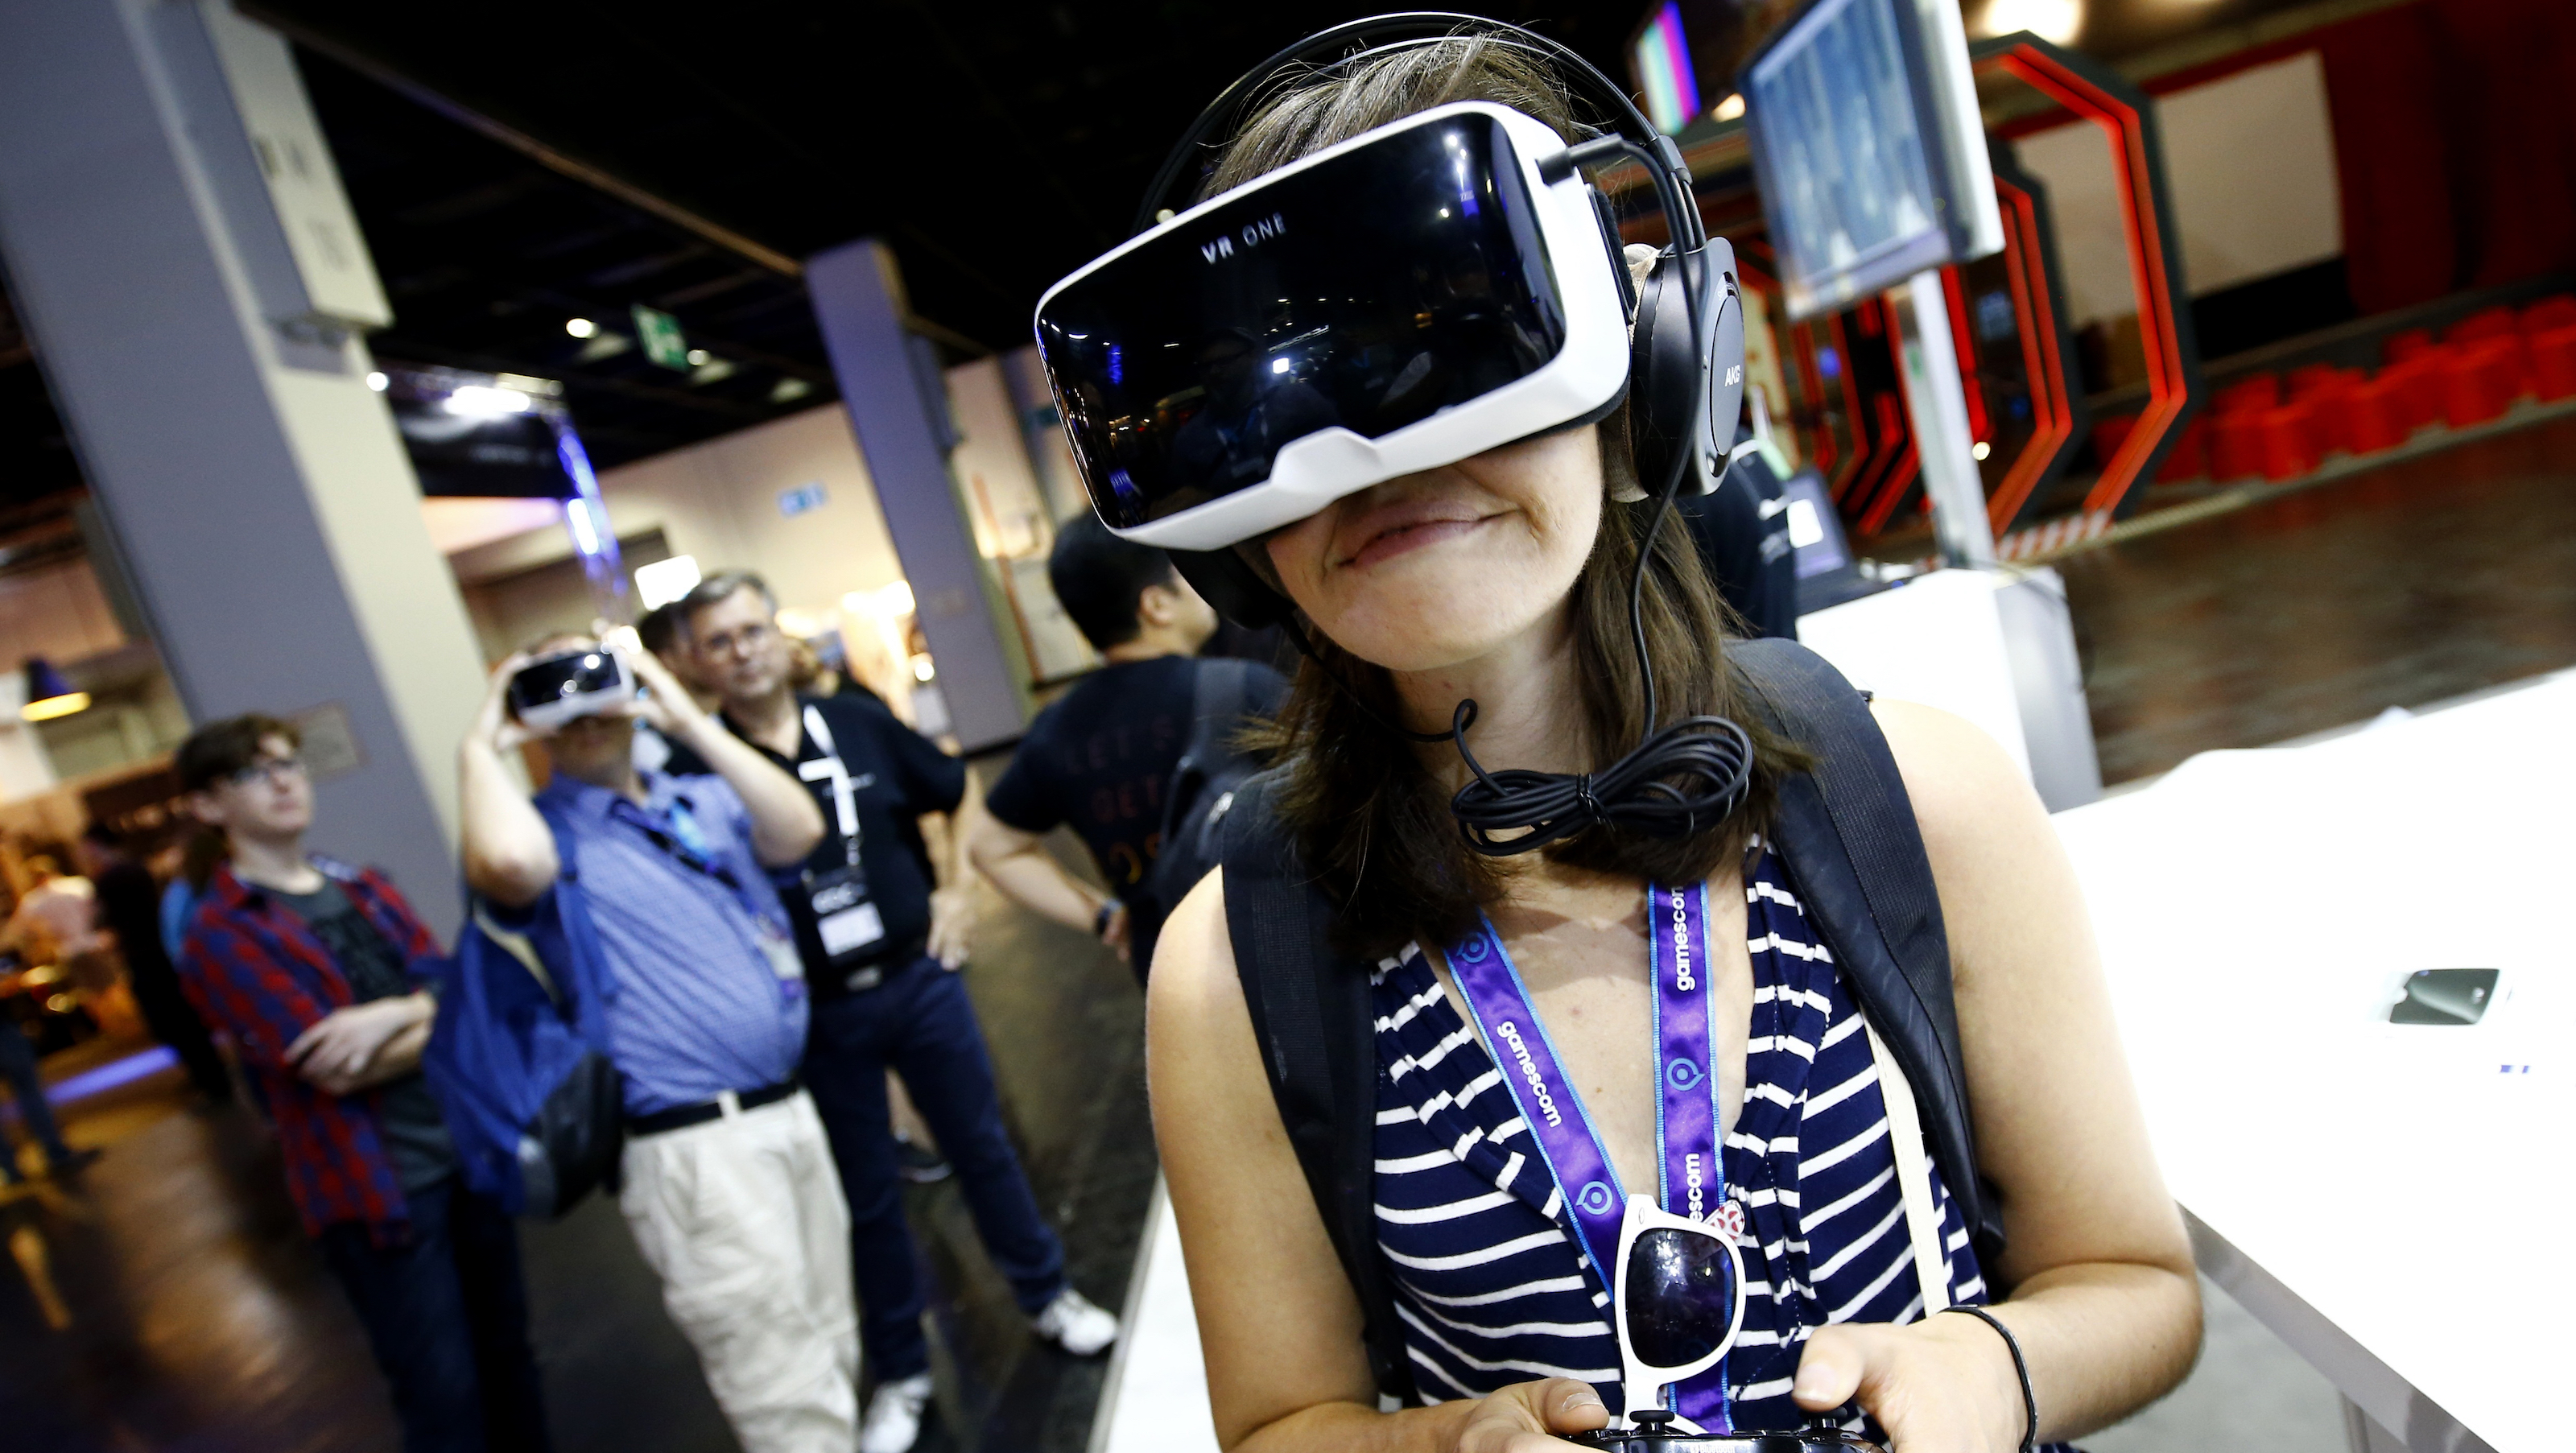 """A woman tests a virtual reality headset """"VR One"""" developed by a German manufacturer Zeiss at the Gamescom 2015 fair in Cologne, Germany August 5, 2015. The Gamescom convention, Europe's largest video games trade fair, runs from August 5 to August 9. REUTERS/Kai Pfaffenbach  - RTX1N431"""